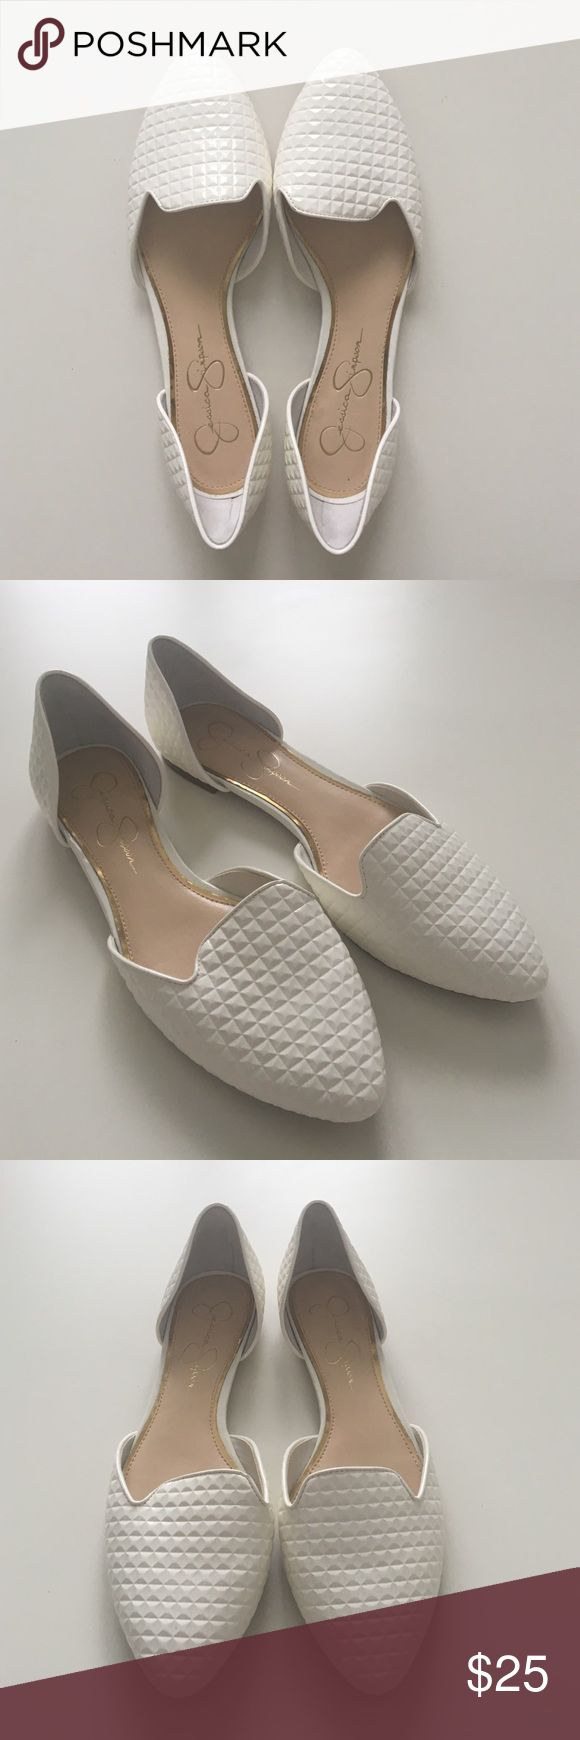 Jessica Simpson Patent Flats Leather, white, never worn Jessica Simpson Shoes Flats & Loafers